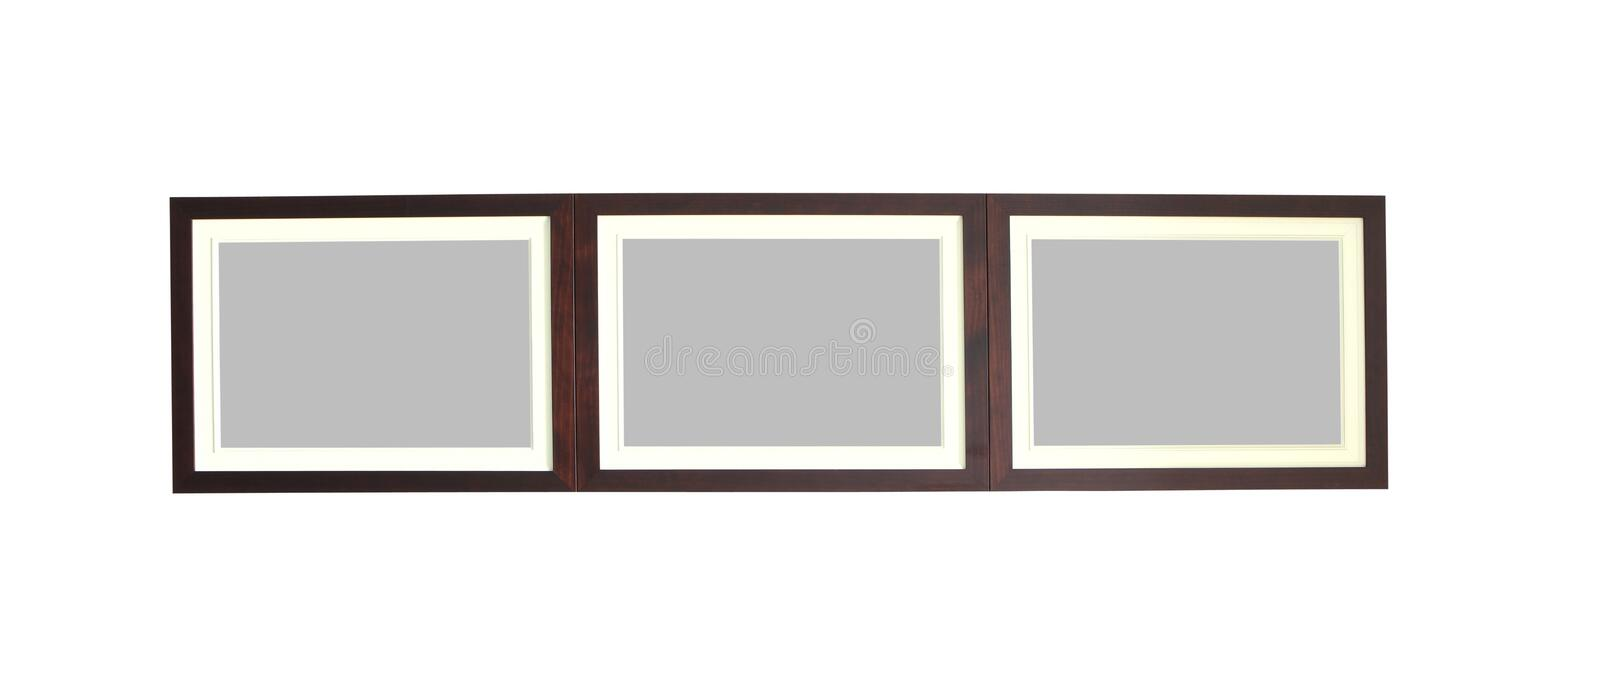 Beautiful photo frame made by wood texture stock photography